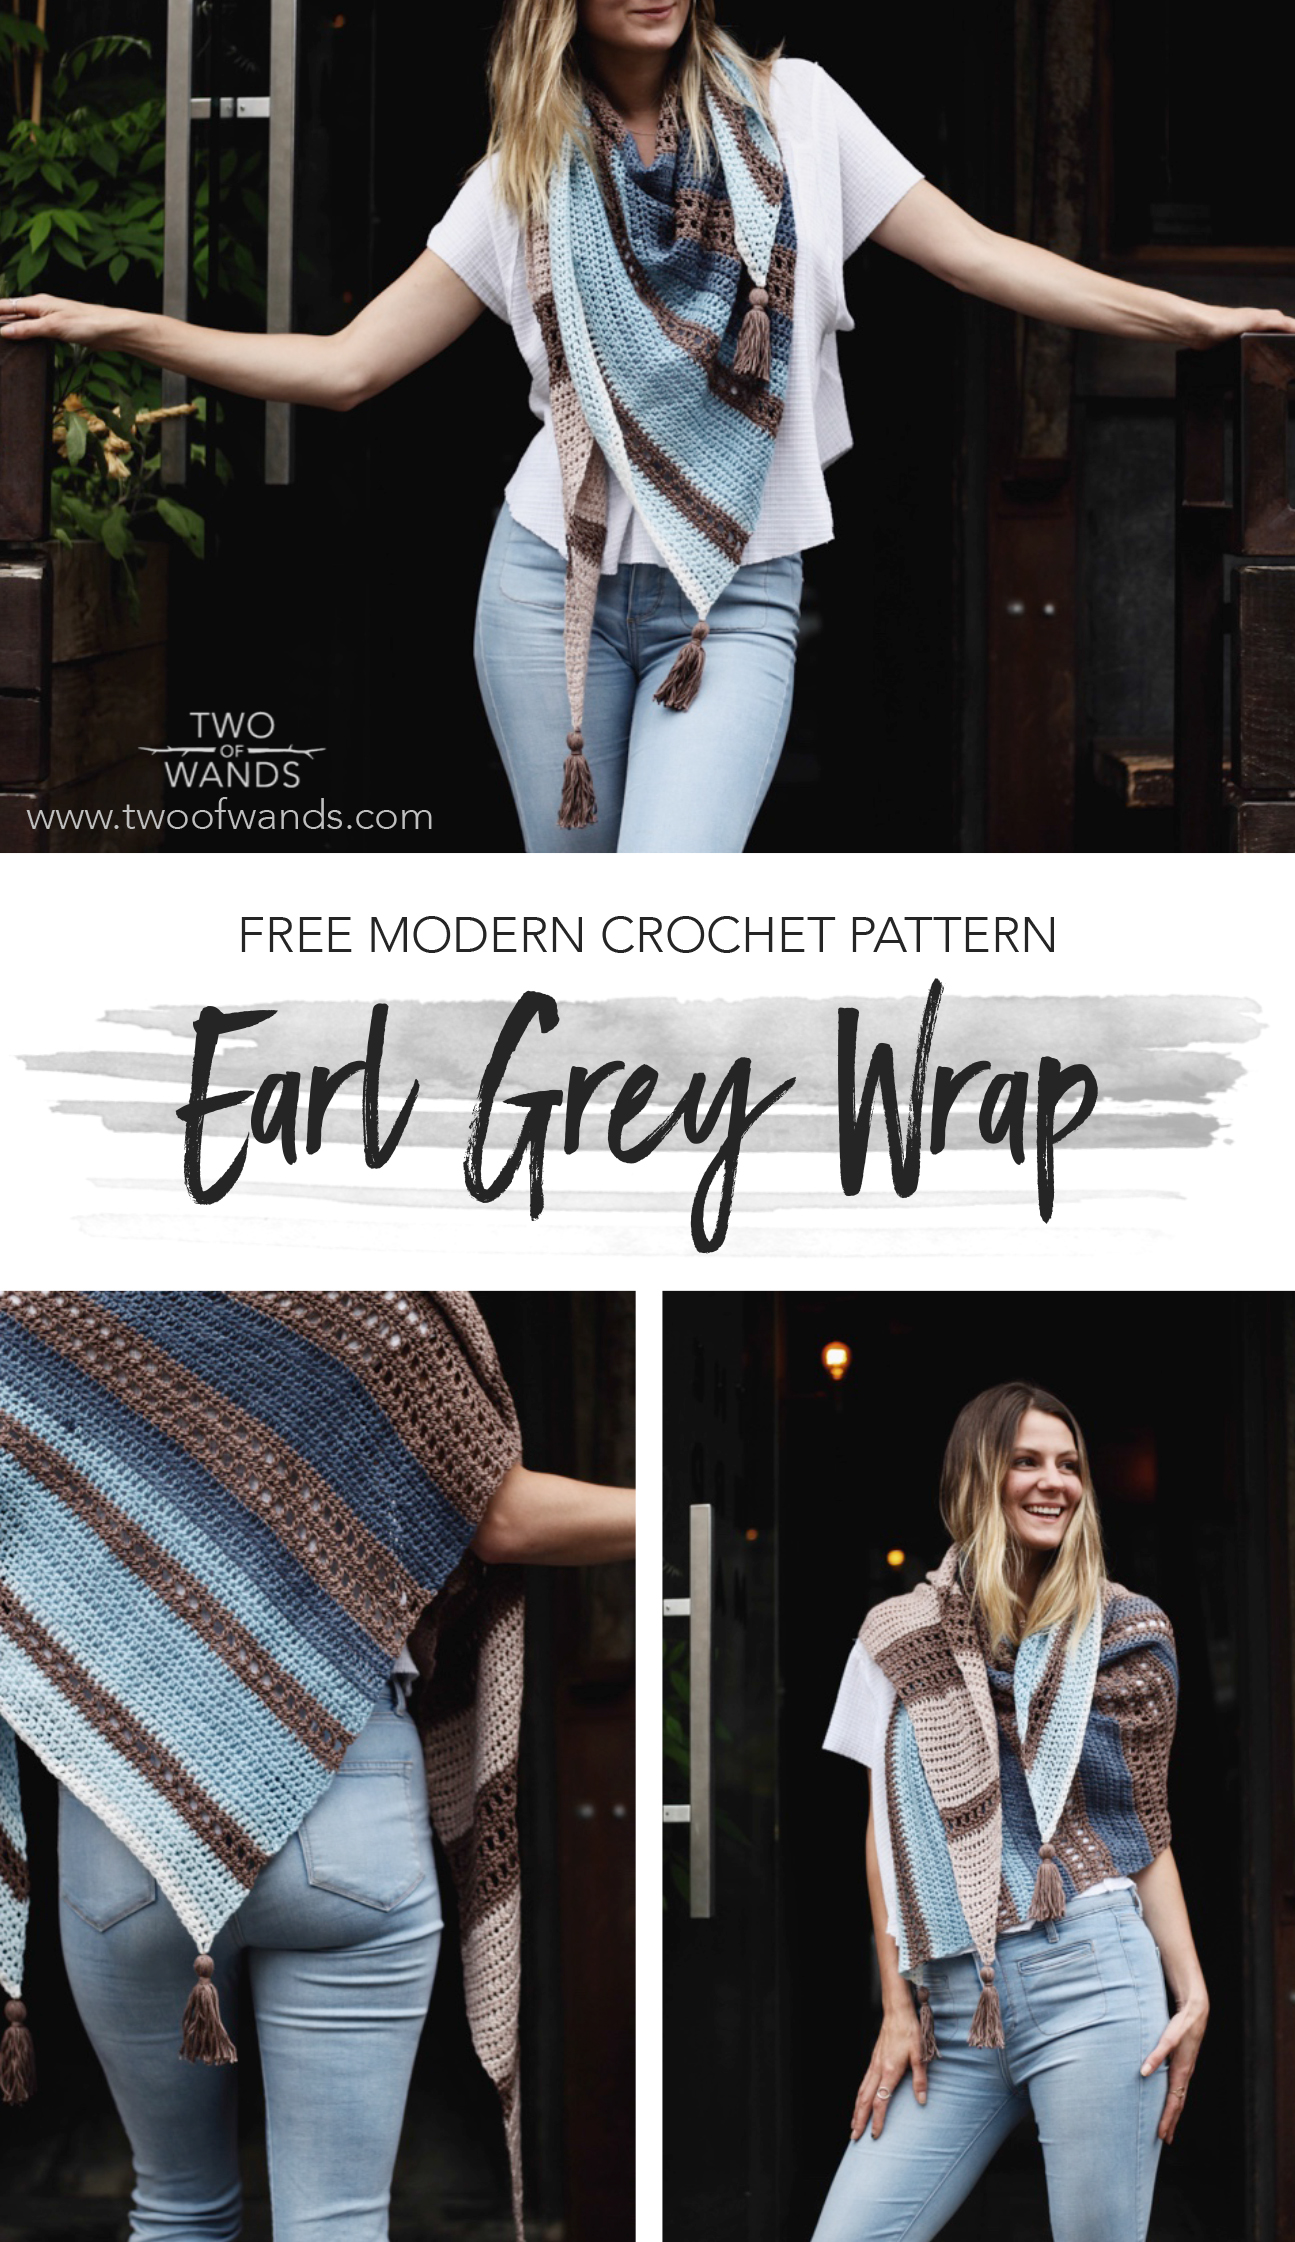 Earl Grey Wrap pattern by Two of Wands